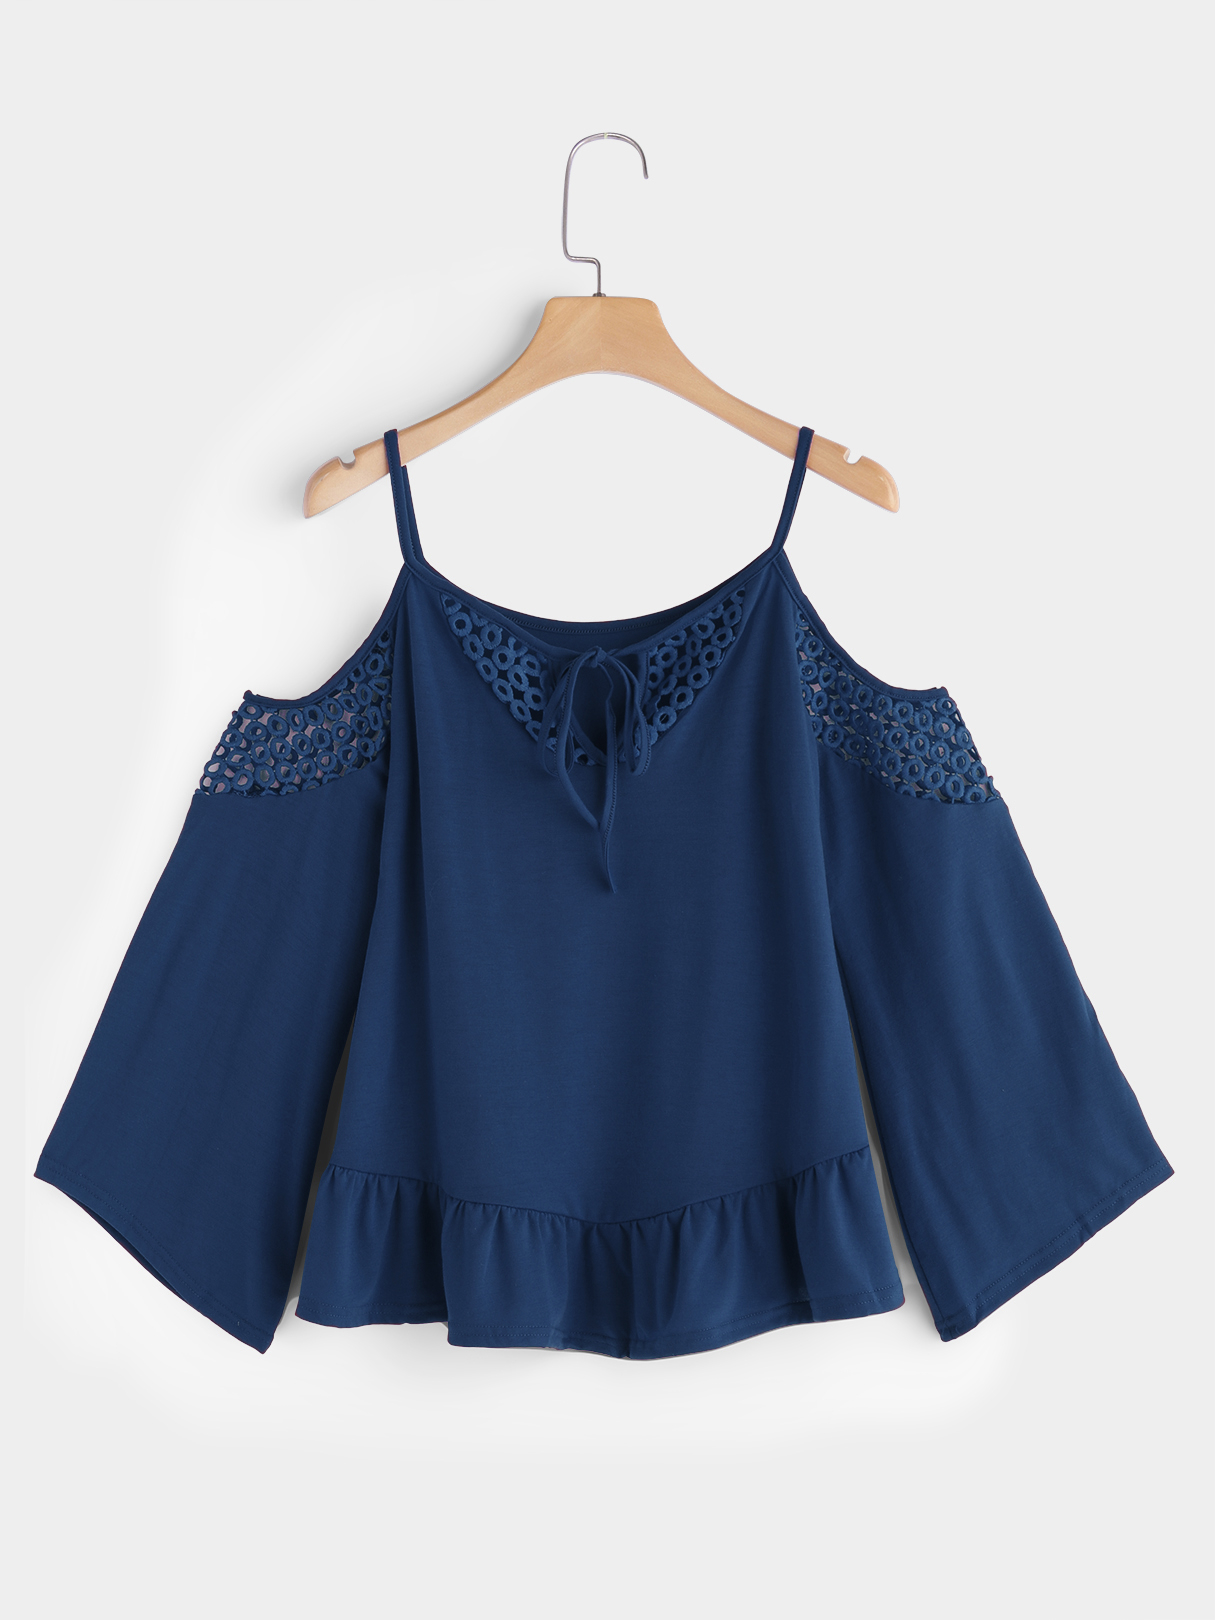 цена на Blue Hollow Detials Cold Shoulder Lace Up Details Long Flared Sleeves Blouse